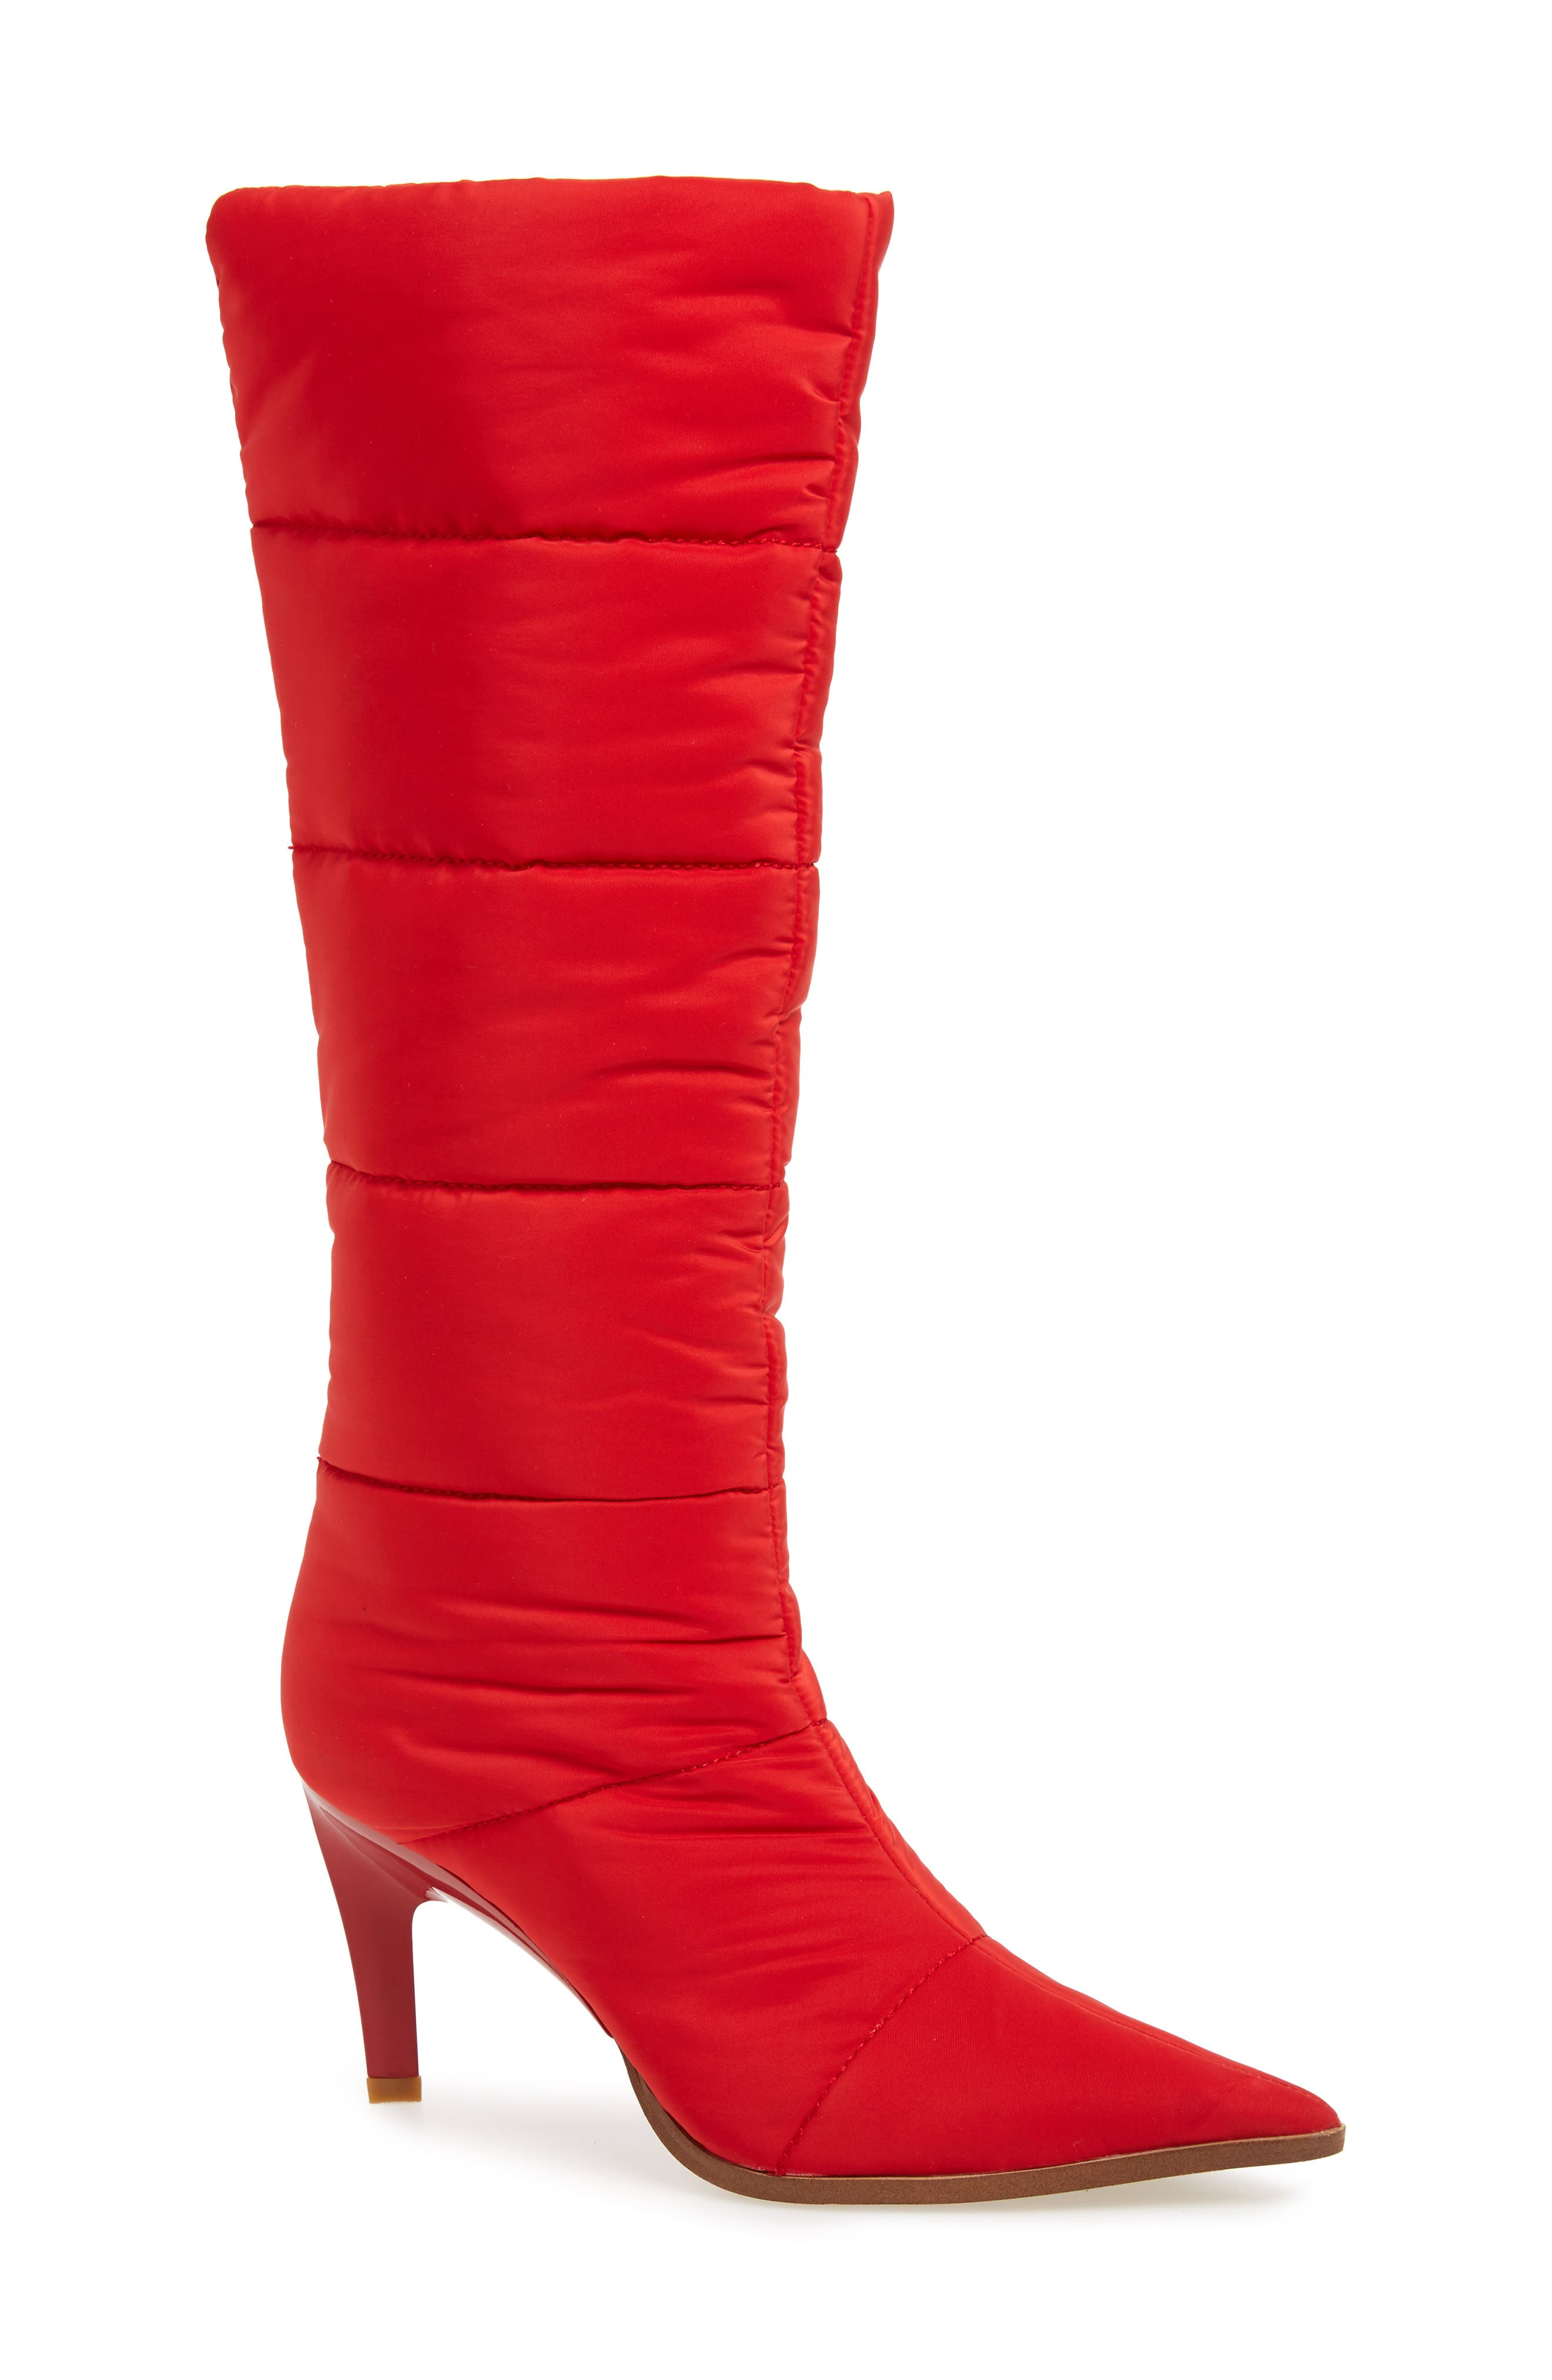 Apris Knee High Puffer Boot,                         Main,                         color, RED FABRIC